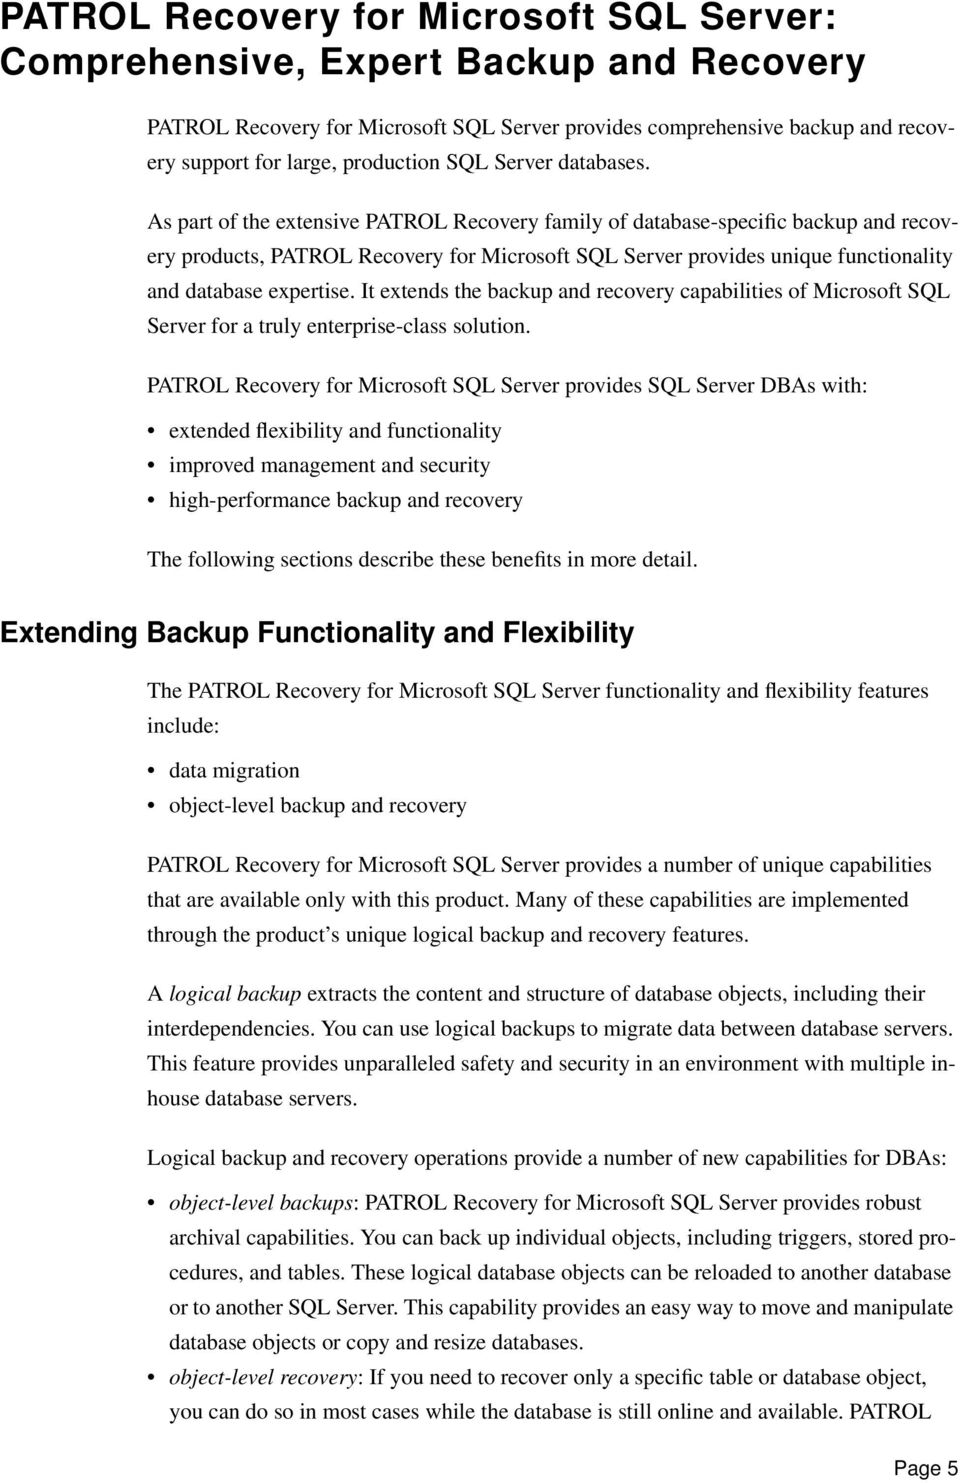 As part of the extensive PATROL Recovery family of database-specific backup and recovery products, PATROL Recovery for Microsoft SQL Server provides unique functionality and database expertise.